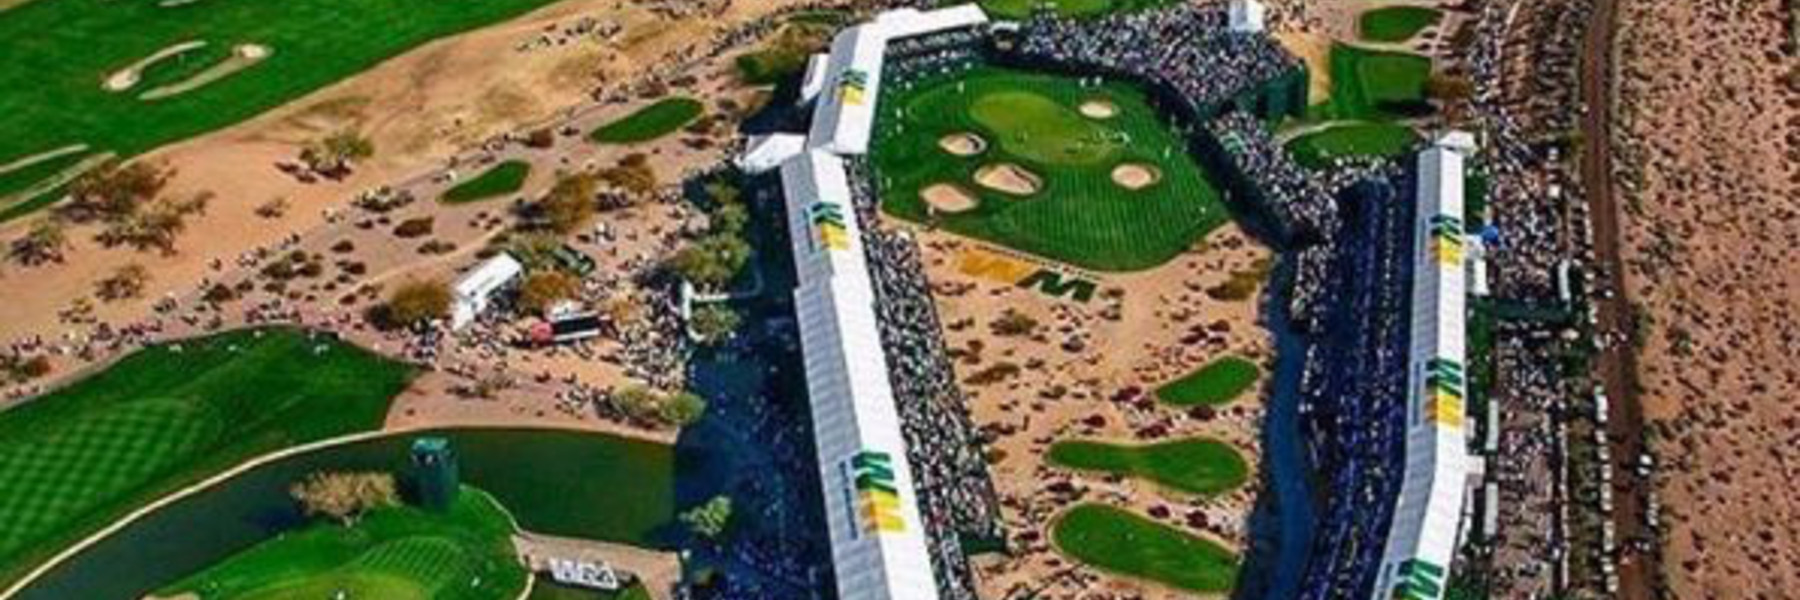 "Golf Vacation Package - Phoenix Open - ""Greatest Show on Grass"" Stay and Play at $199!"